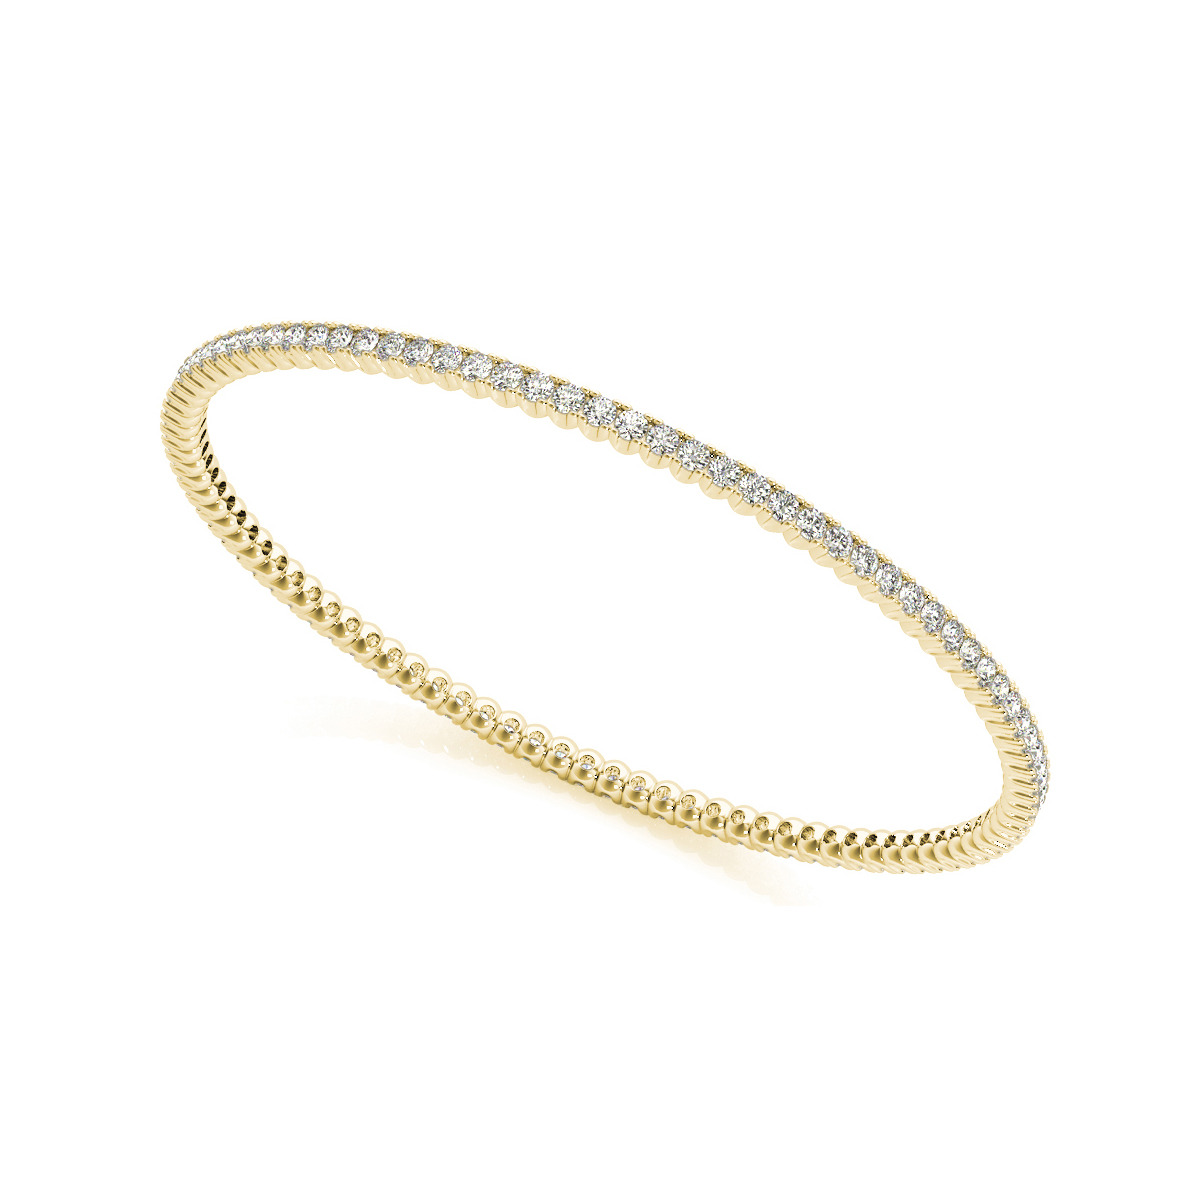 14k-yellow-gold-traditional-bangles-and-bracelet-70010